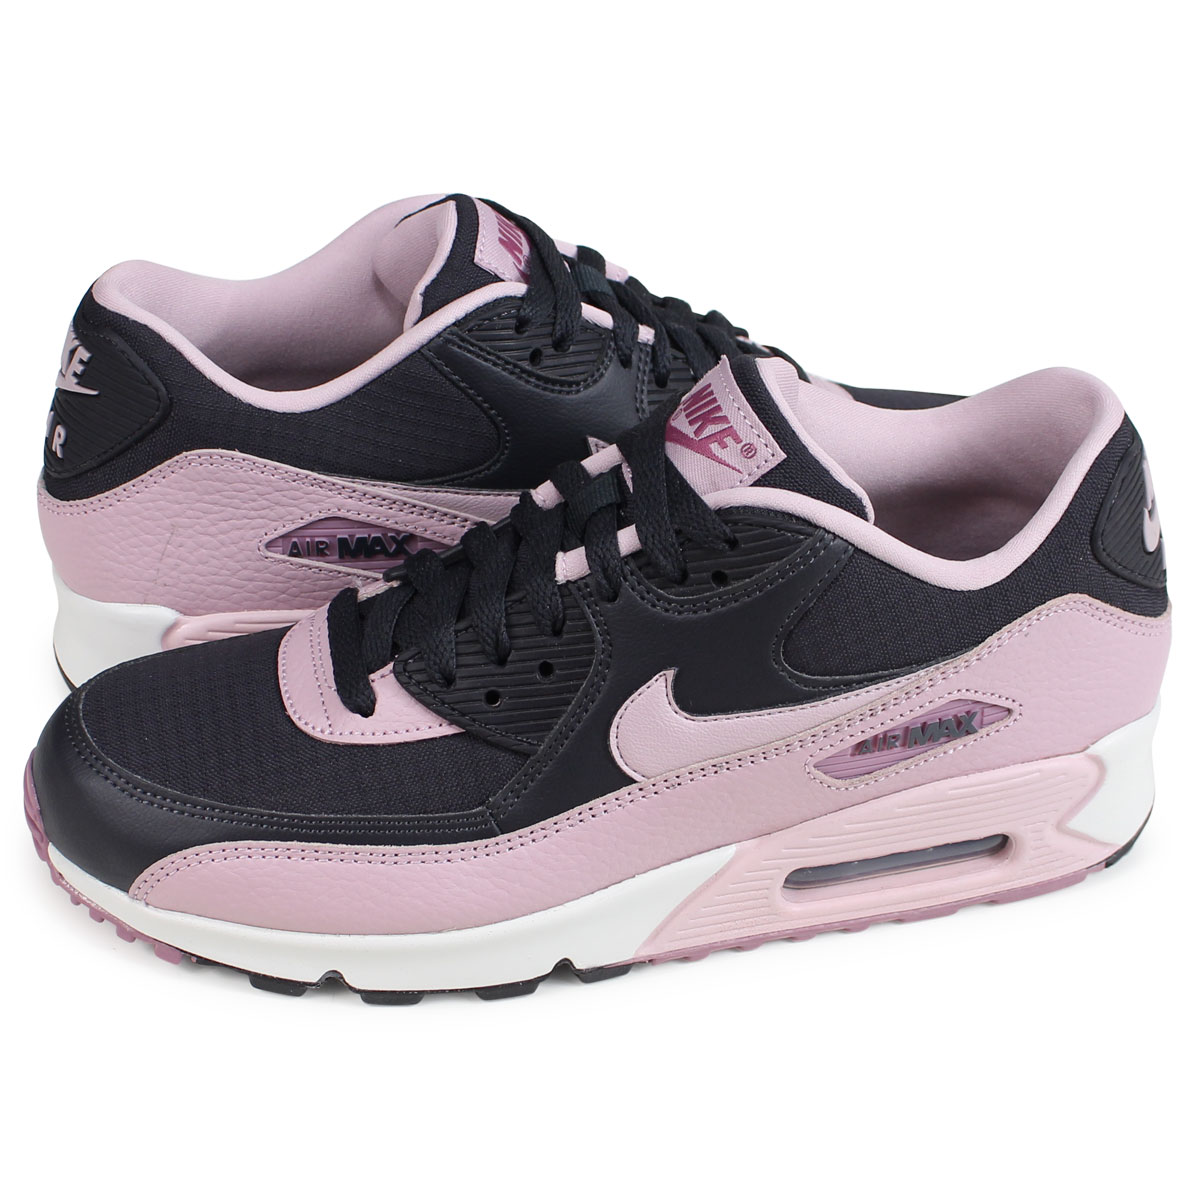 Nike Kids Air Max 90 BR GS, PINK BLASTGAMMA BLUE BLACK, Youth Size 6